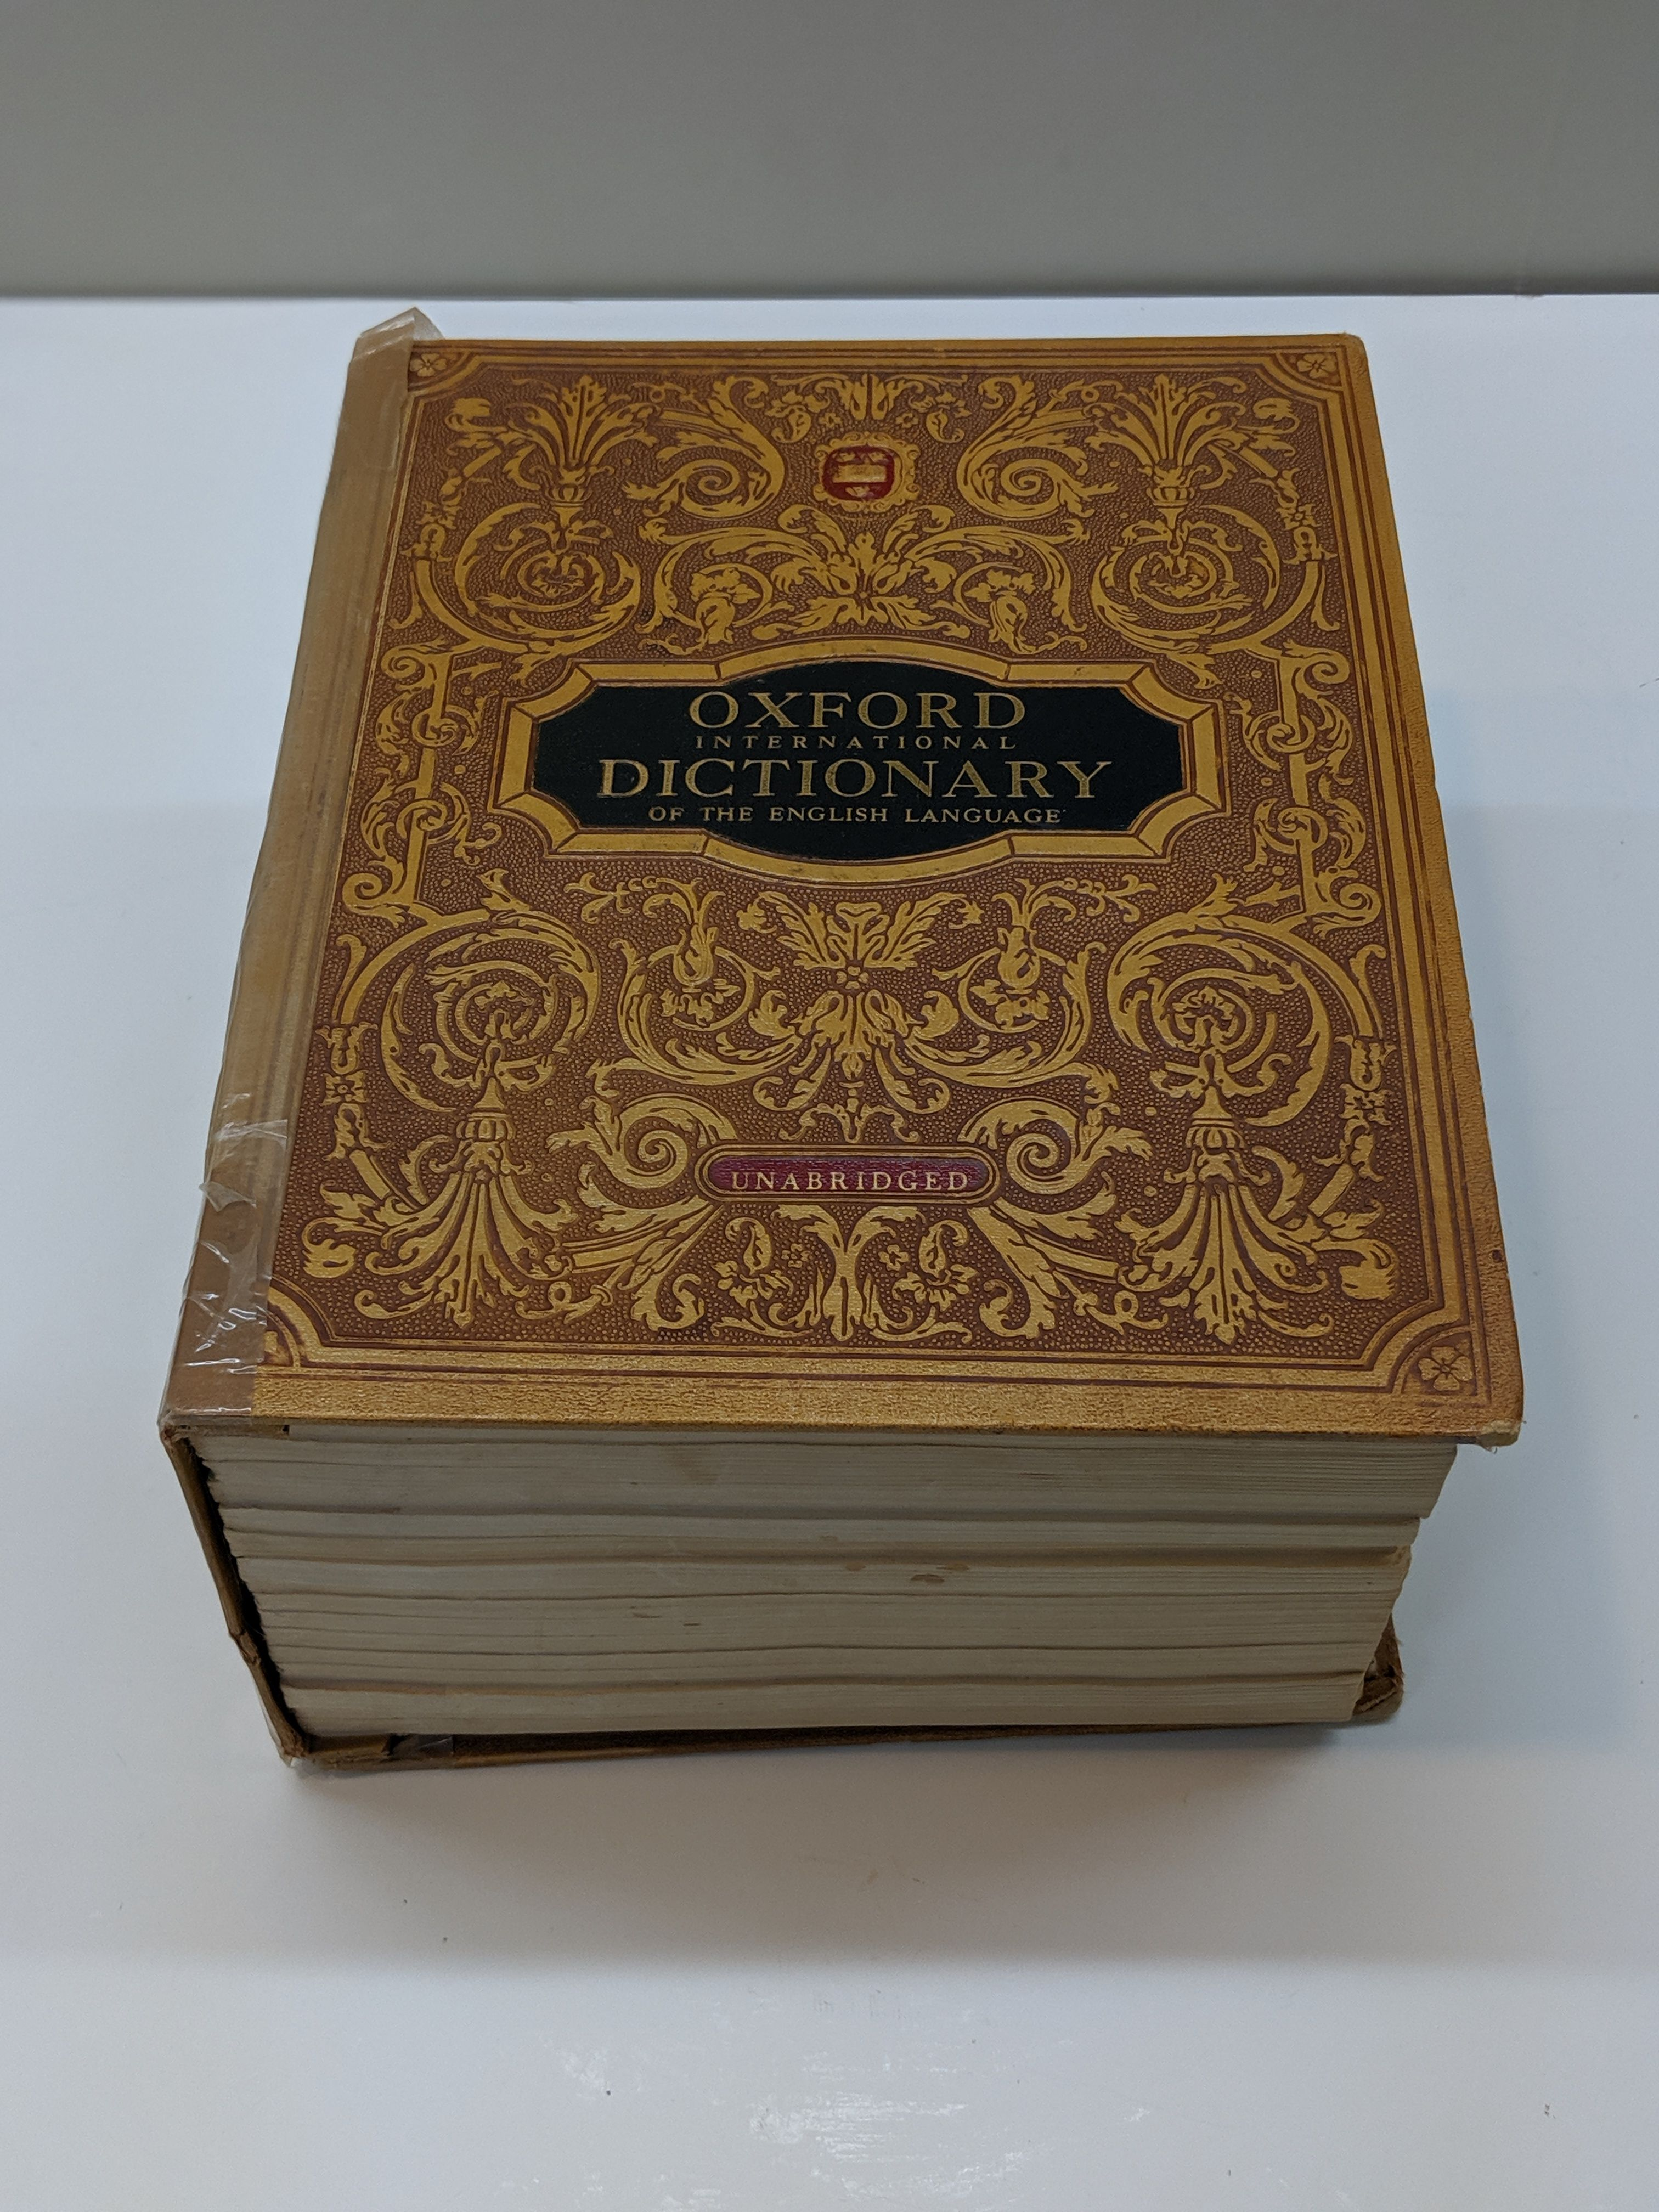 Oxford International Dictionary Of The English Language | English language, Language, Oxford